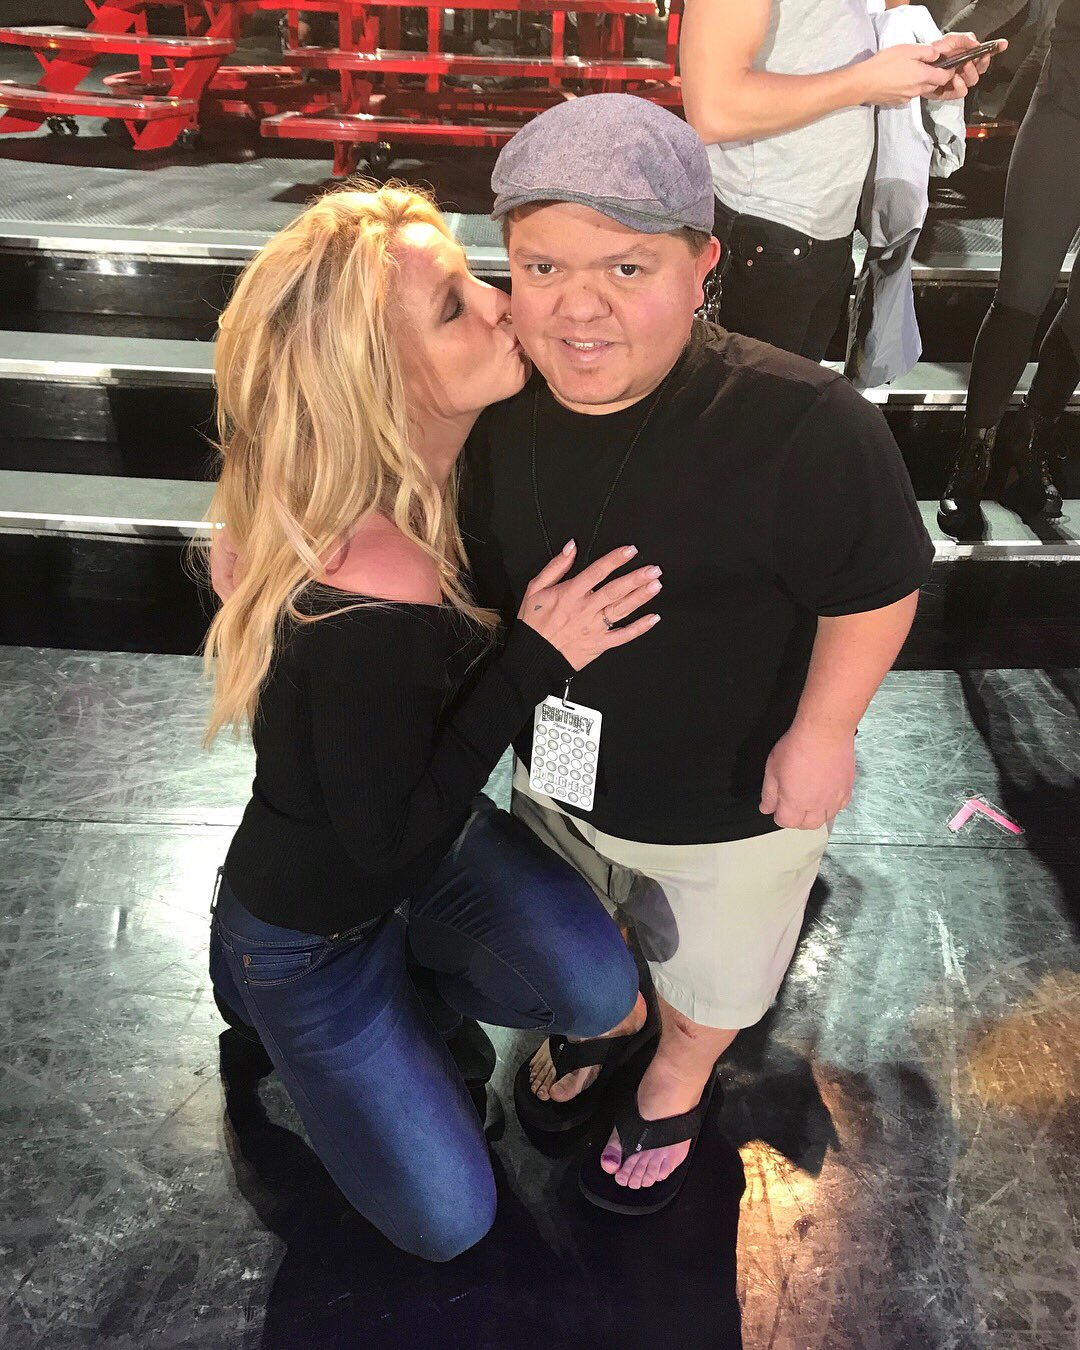 Donny always makes me smile and happy ������ #PieceOfMe https://t.co/0DgnYR5P6L